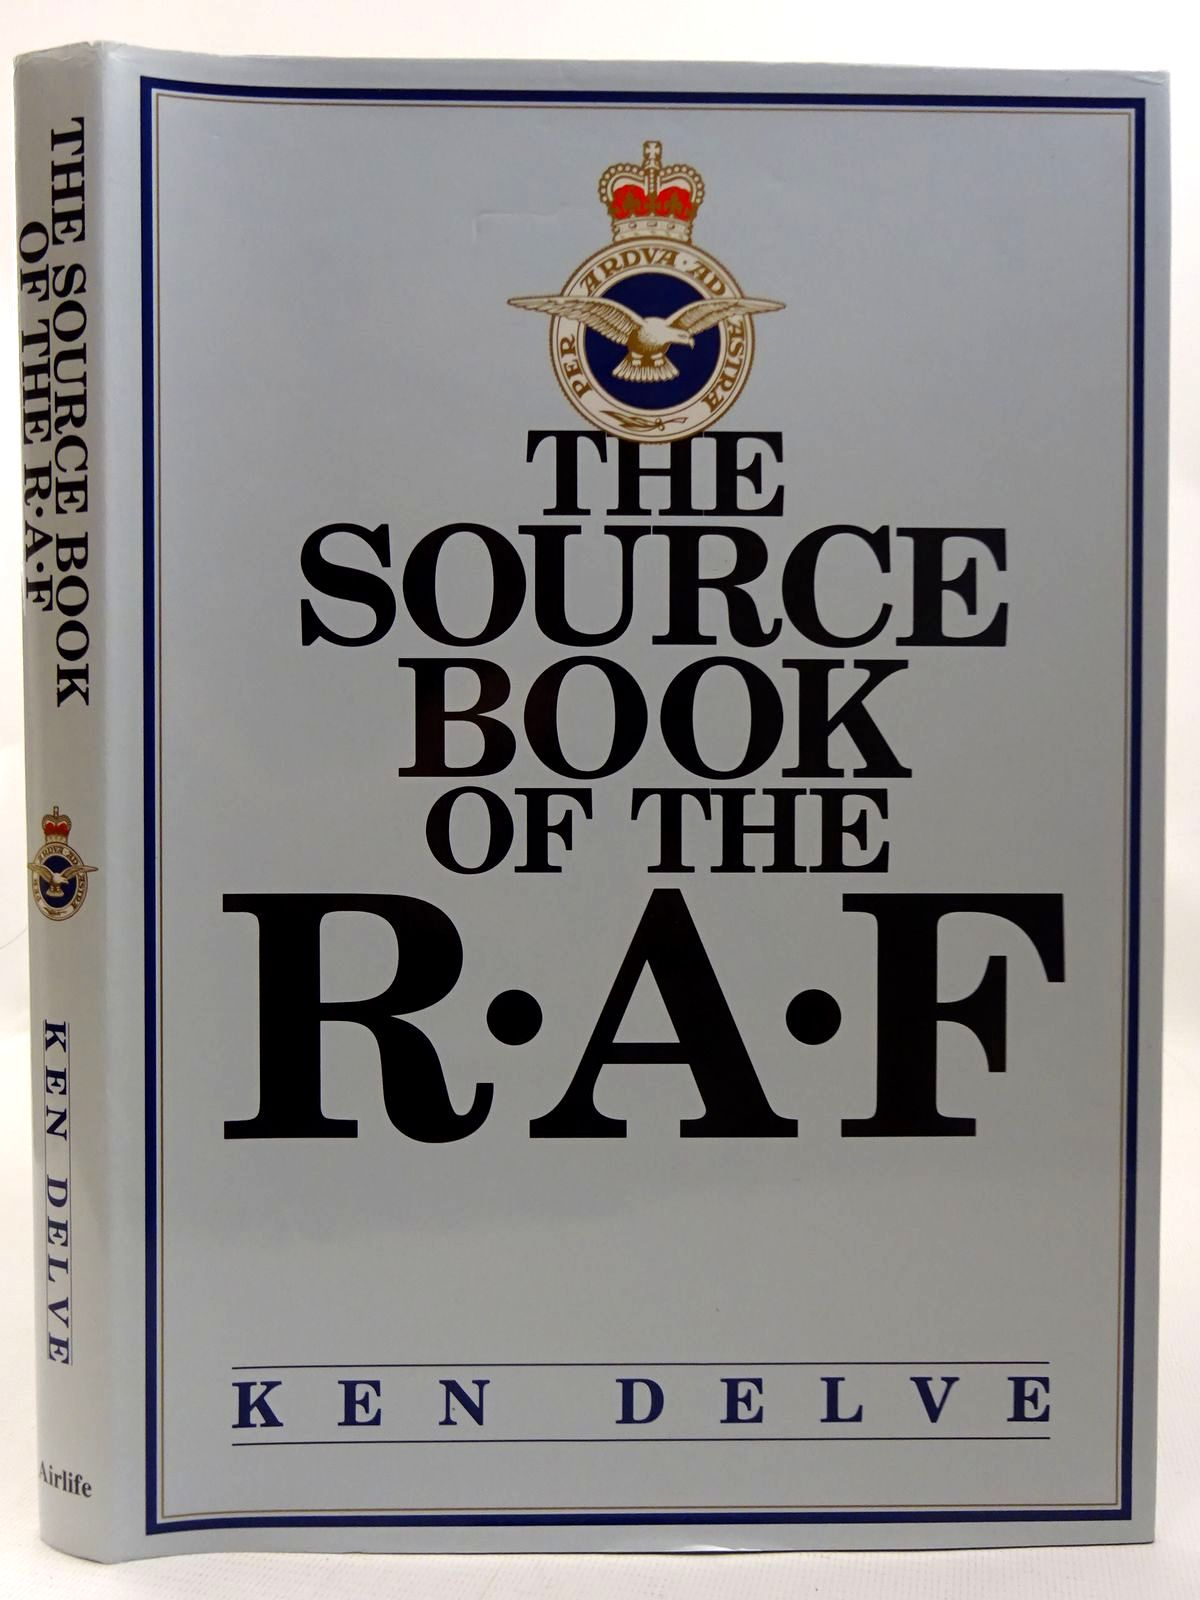 Photo of THE SOURCE BOOK OF THE R.A.F. written by Delve, Ken published by Airlife (STOCK CODE: 2126458)  for sale by Stella & Rose's Books